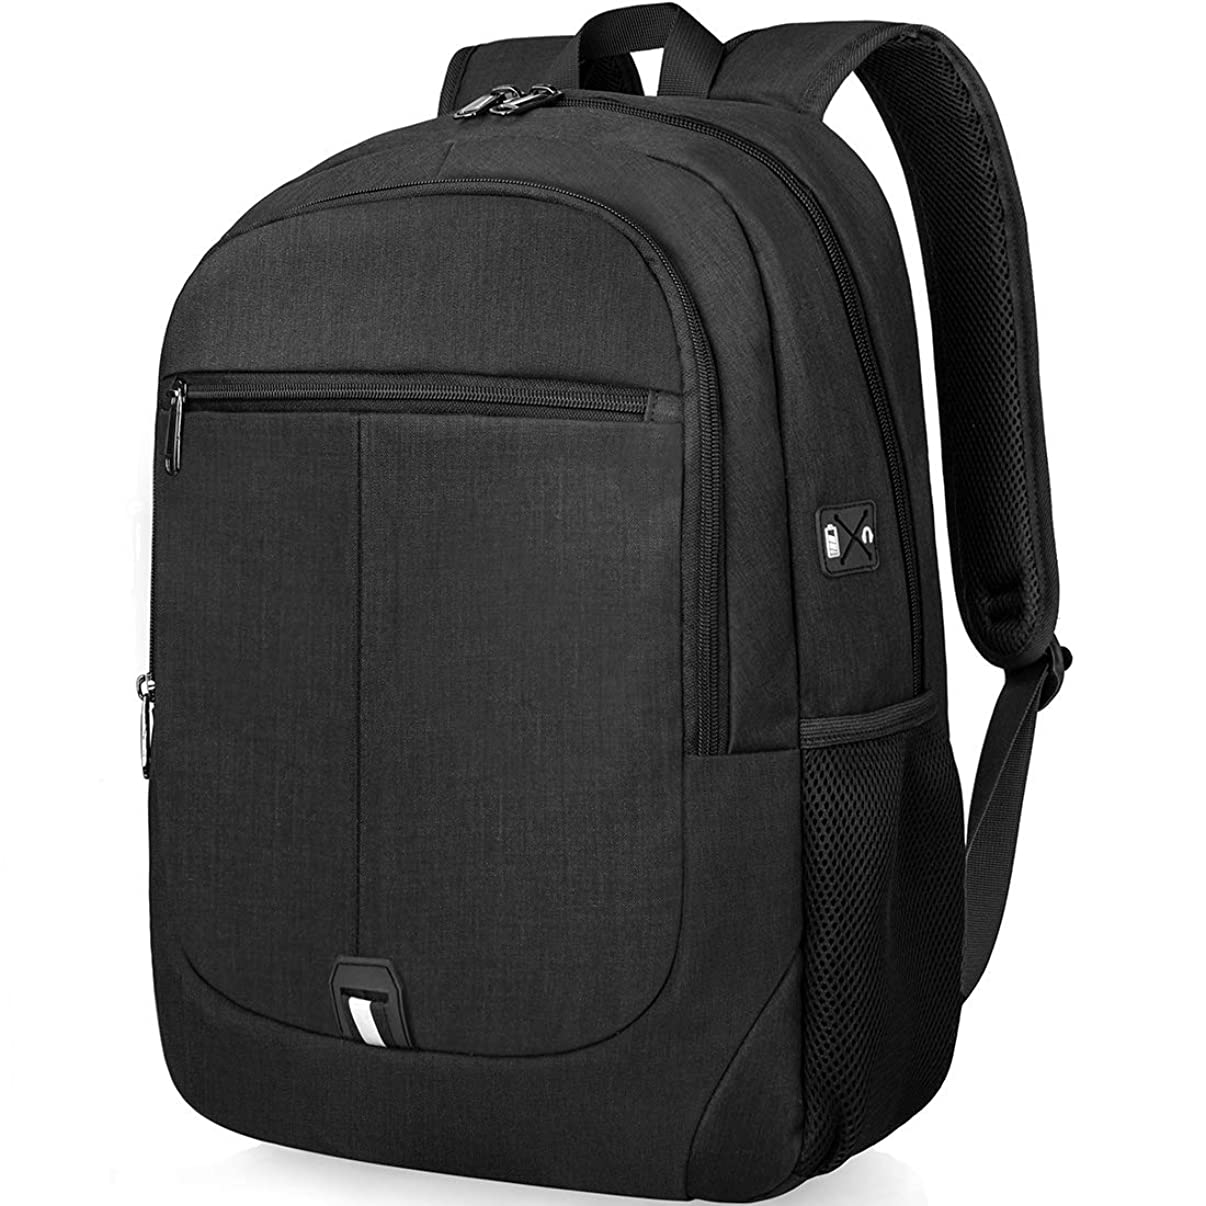 NUBILY Laptop Backpack 15.6 inch School Computer Bag College Students Bookbag Water Resistant Travel Business Backpacks for Men Women Hiking Traveling Carryon Lightweight Daypack Black